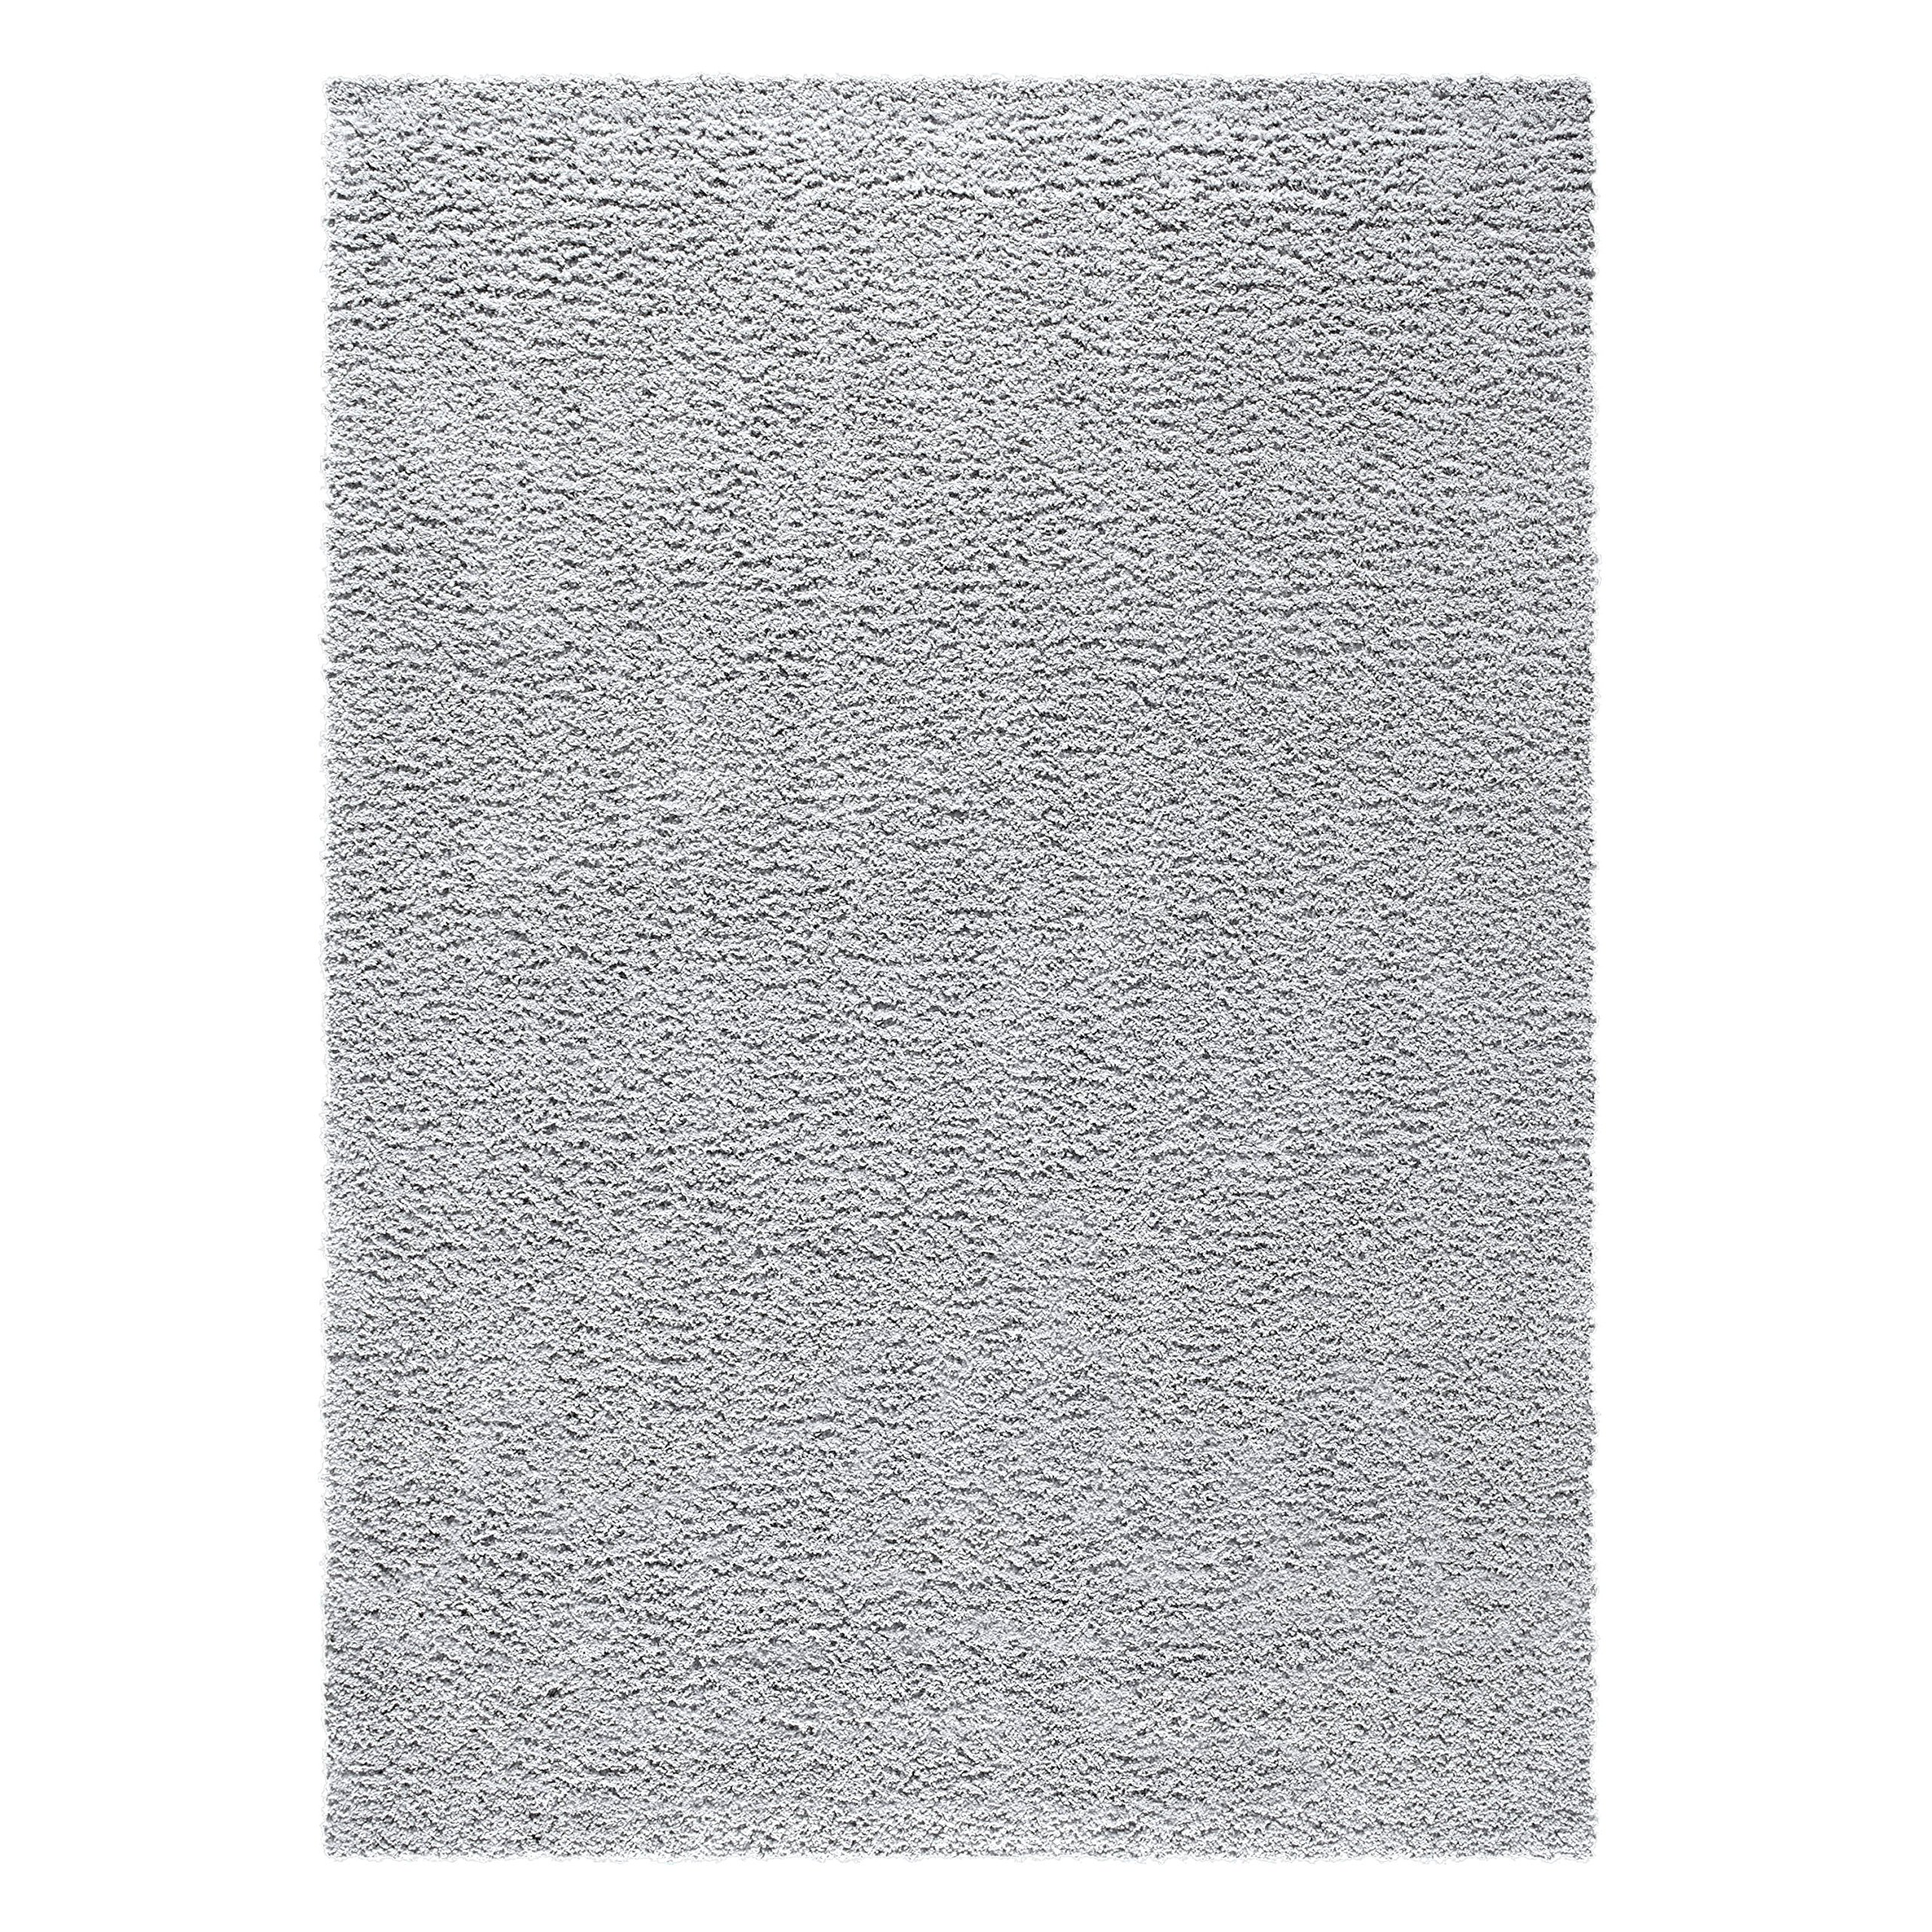 Area Rugs, Maples Rugs [Made in USA][Catriona] 7' x 10' Non Slip Padded Large Rug for Living Room, Bedroom, and Dining Room - Soft Silver